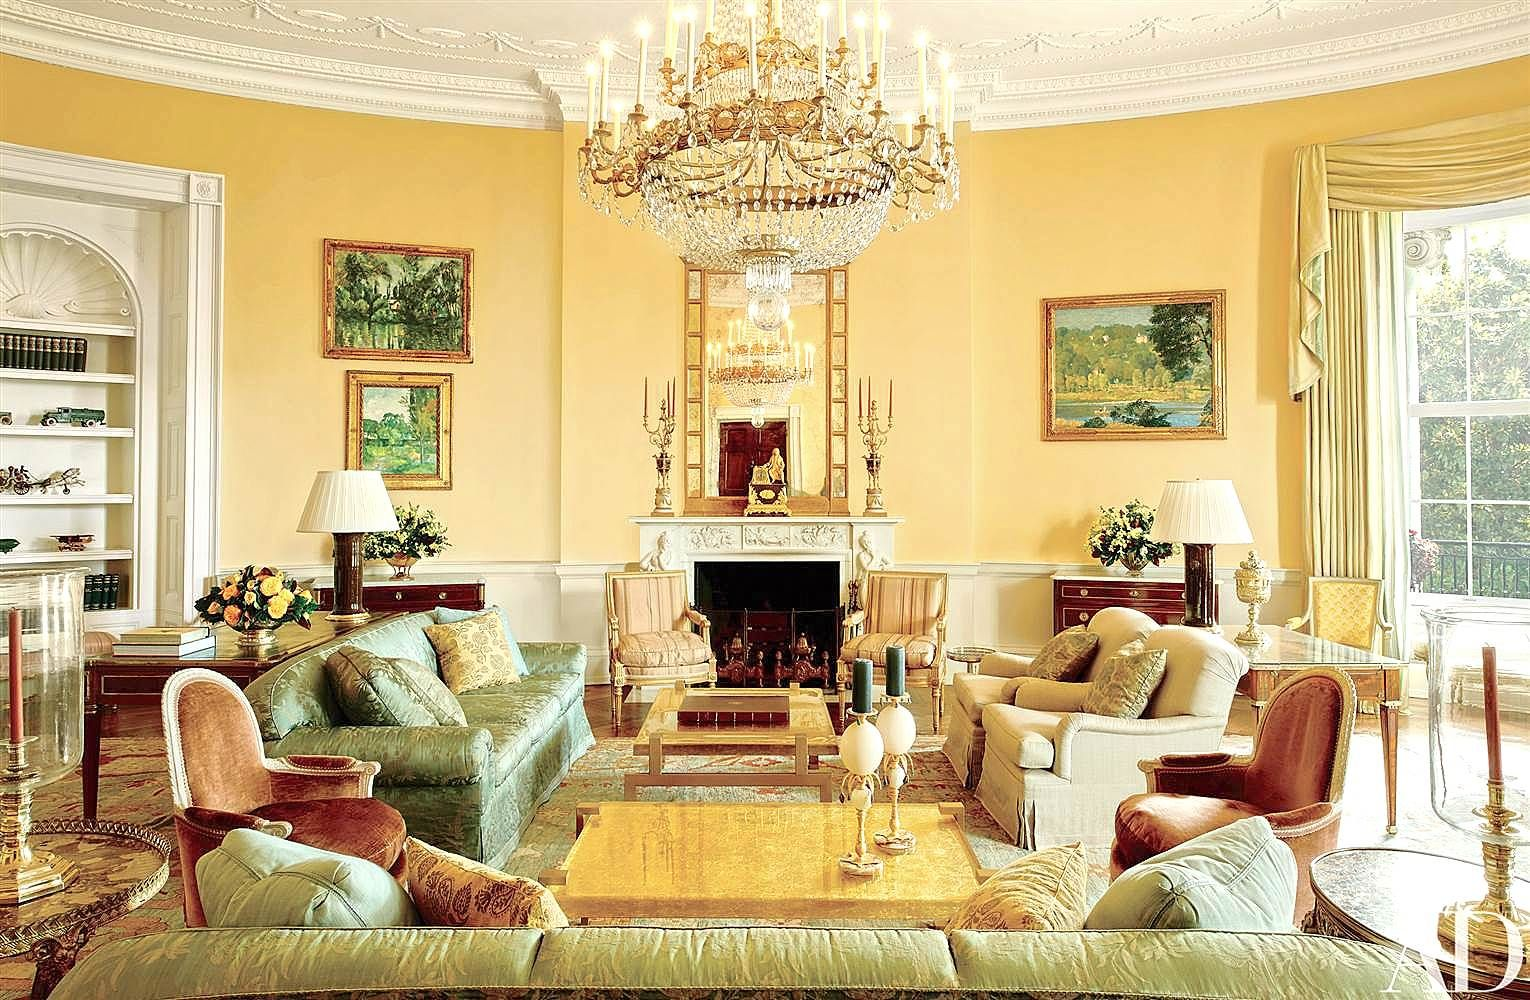 The yellow Oval Room of the Obamas - looks like a completely different room although most of the furniture was kept and reused from the earlier Bush decor - the positioning of these two coffee tables does make the room look more spacious